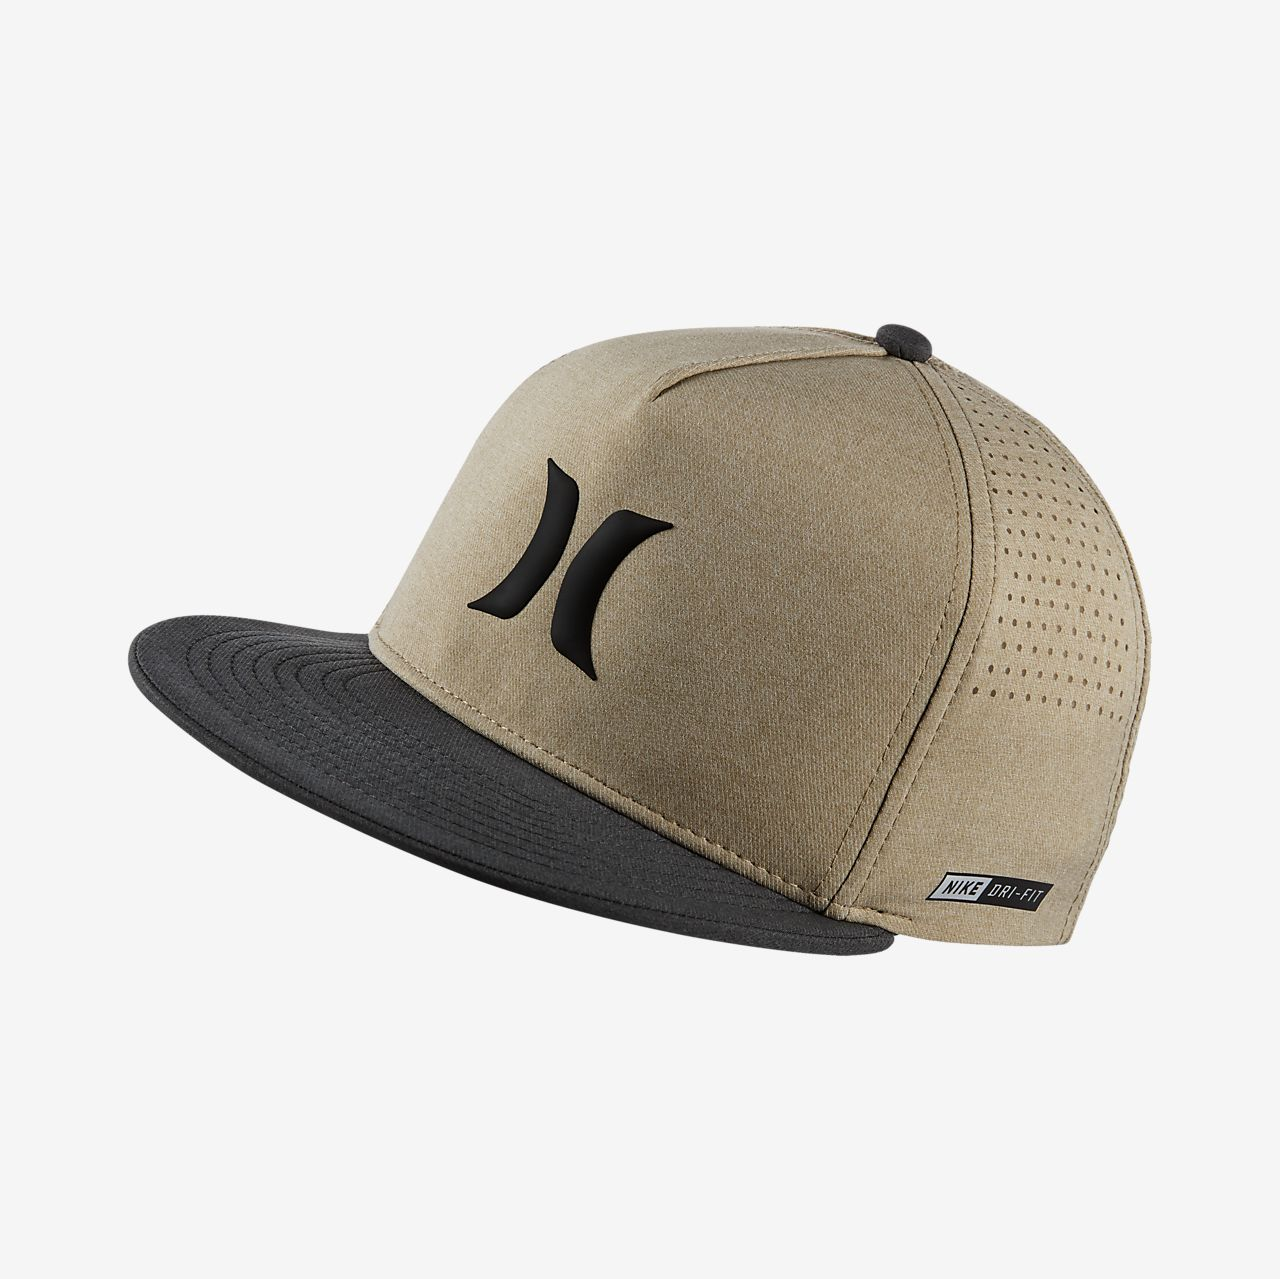 Hurley Dri-FIT Icon Men s Adjustable Hat. Nike.com ZA 269ad78e12e